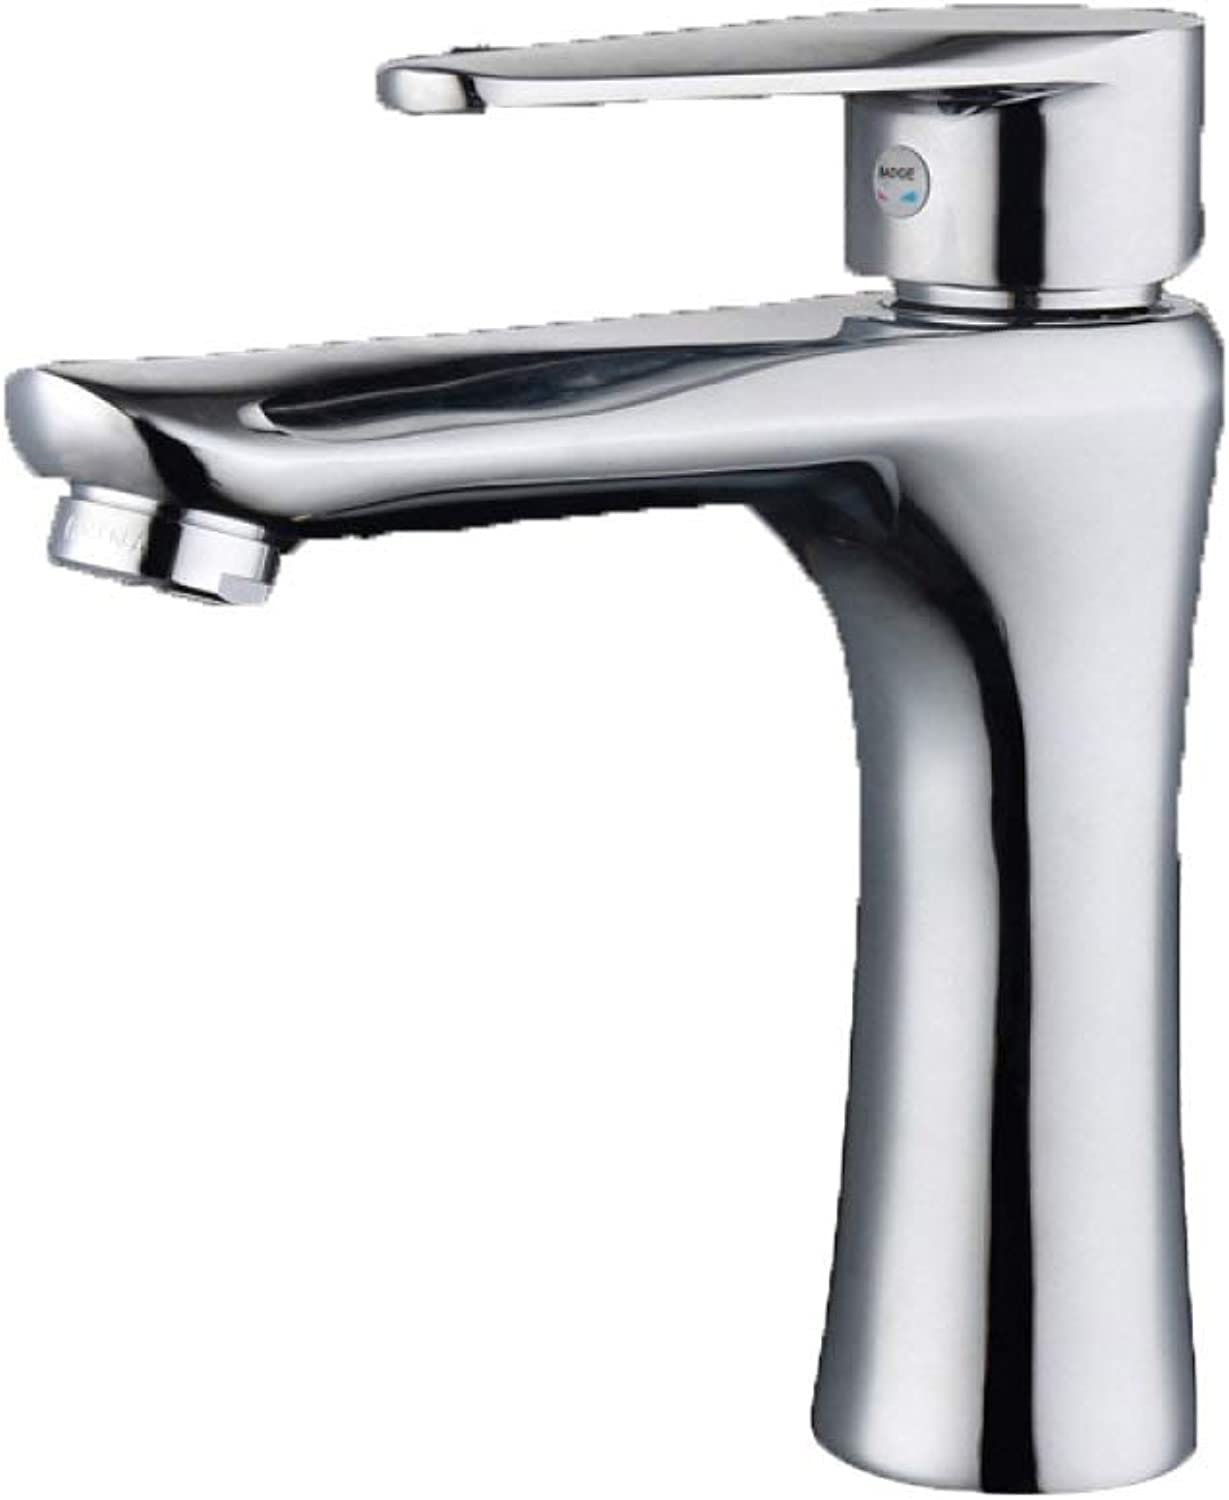 PZXY Faucet Steel Single Hole Single Basin hot and Cold Faucet Bathroom Basin washbasin General Boutique Faucet